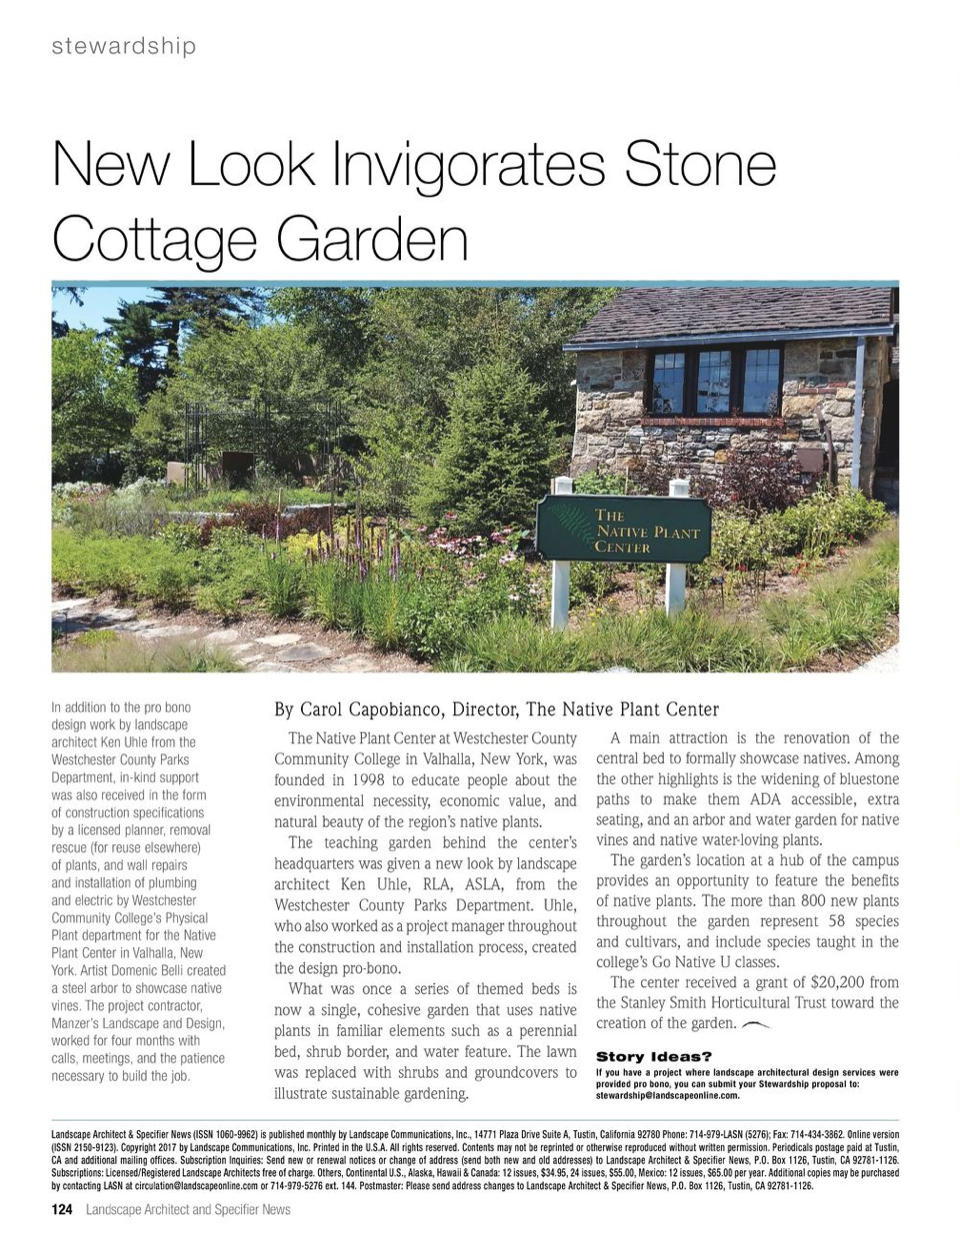 Landscape Architect and Specifier News Magazine